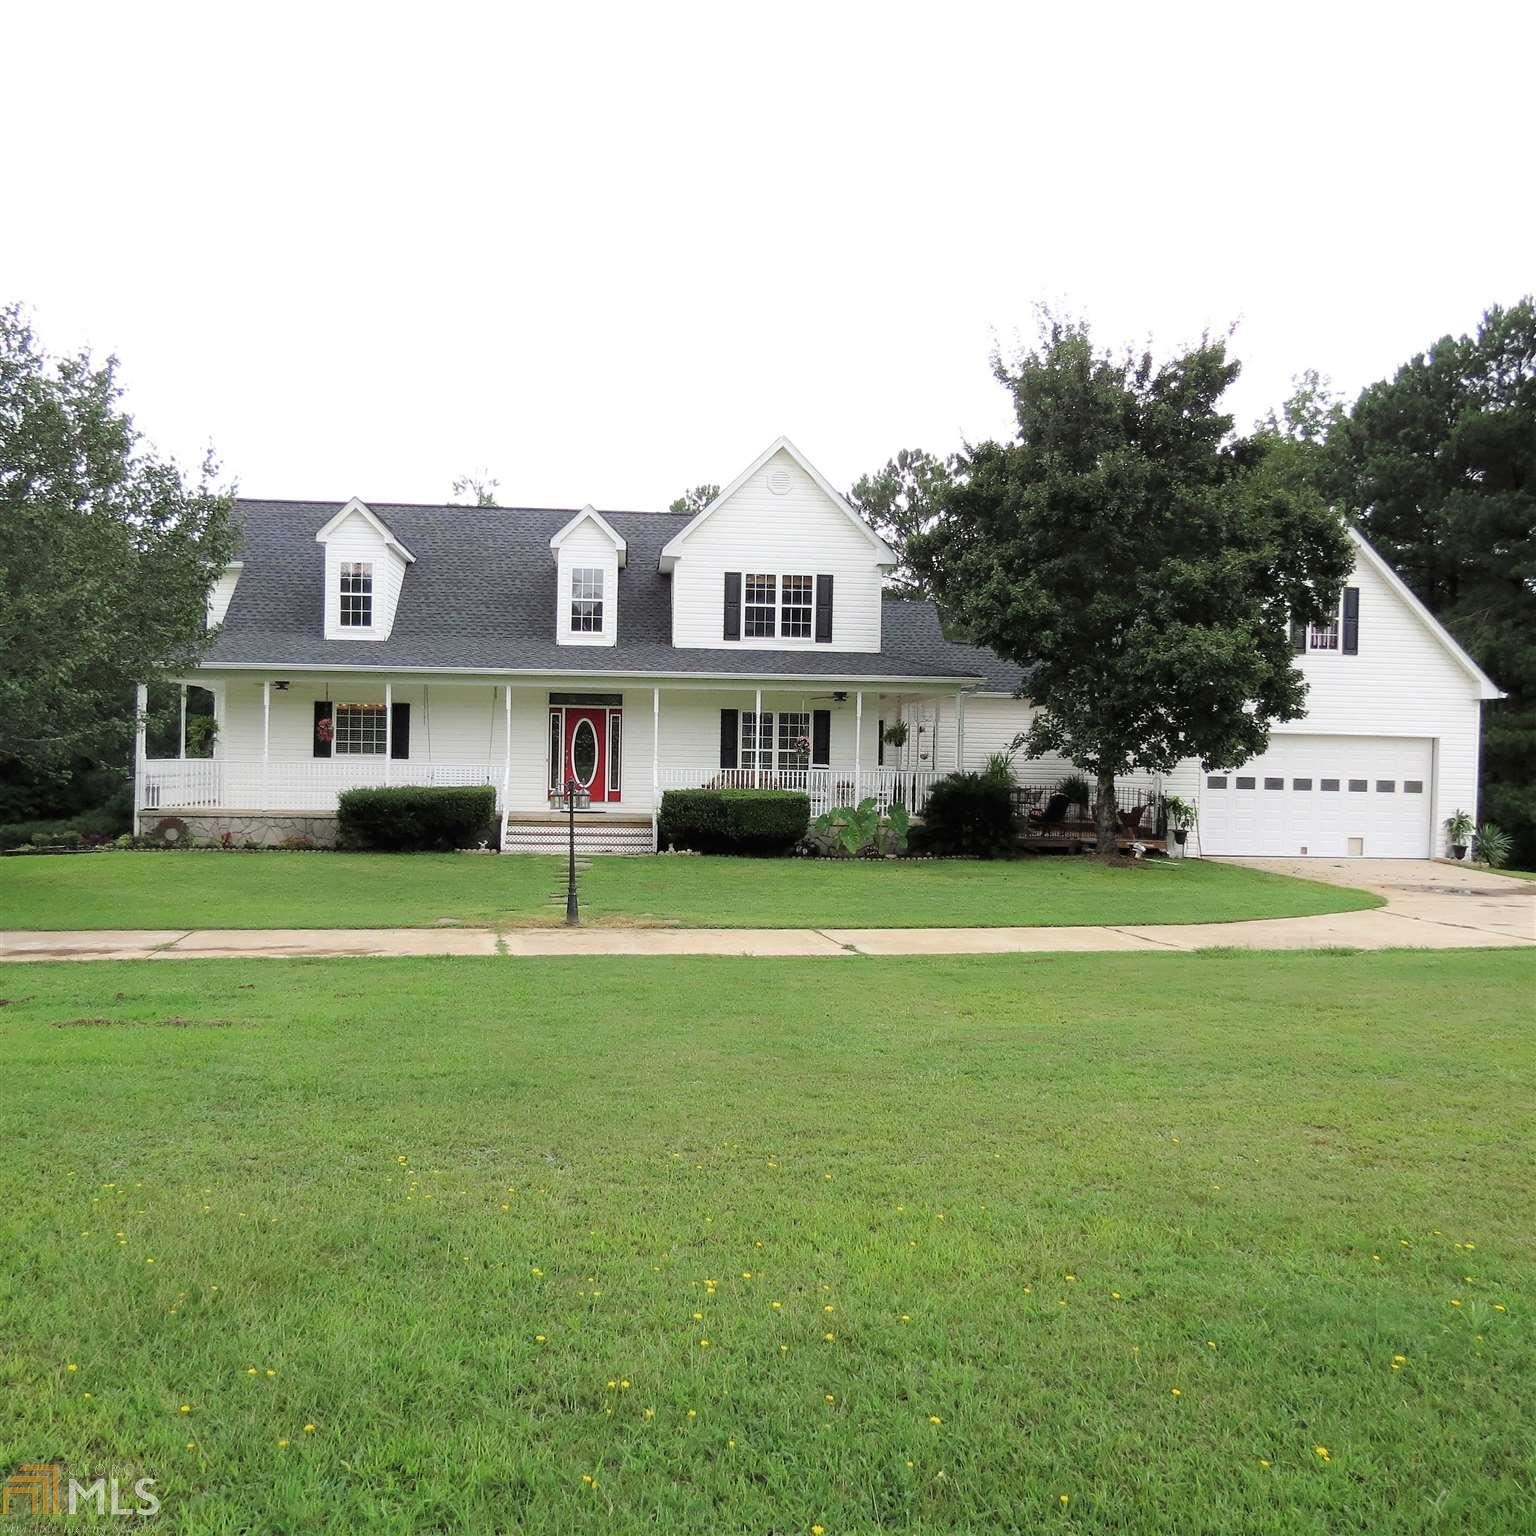 160 Harris Dr, Locust Grove, GA 30248 - MLS#: 8840408